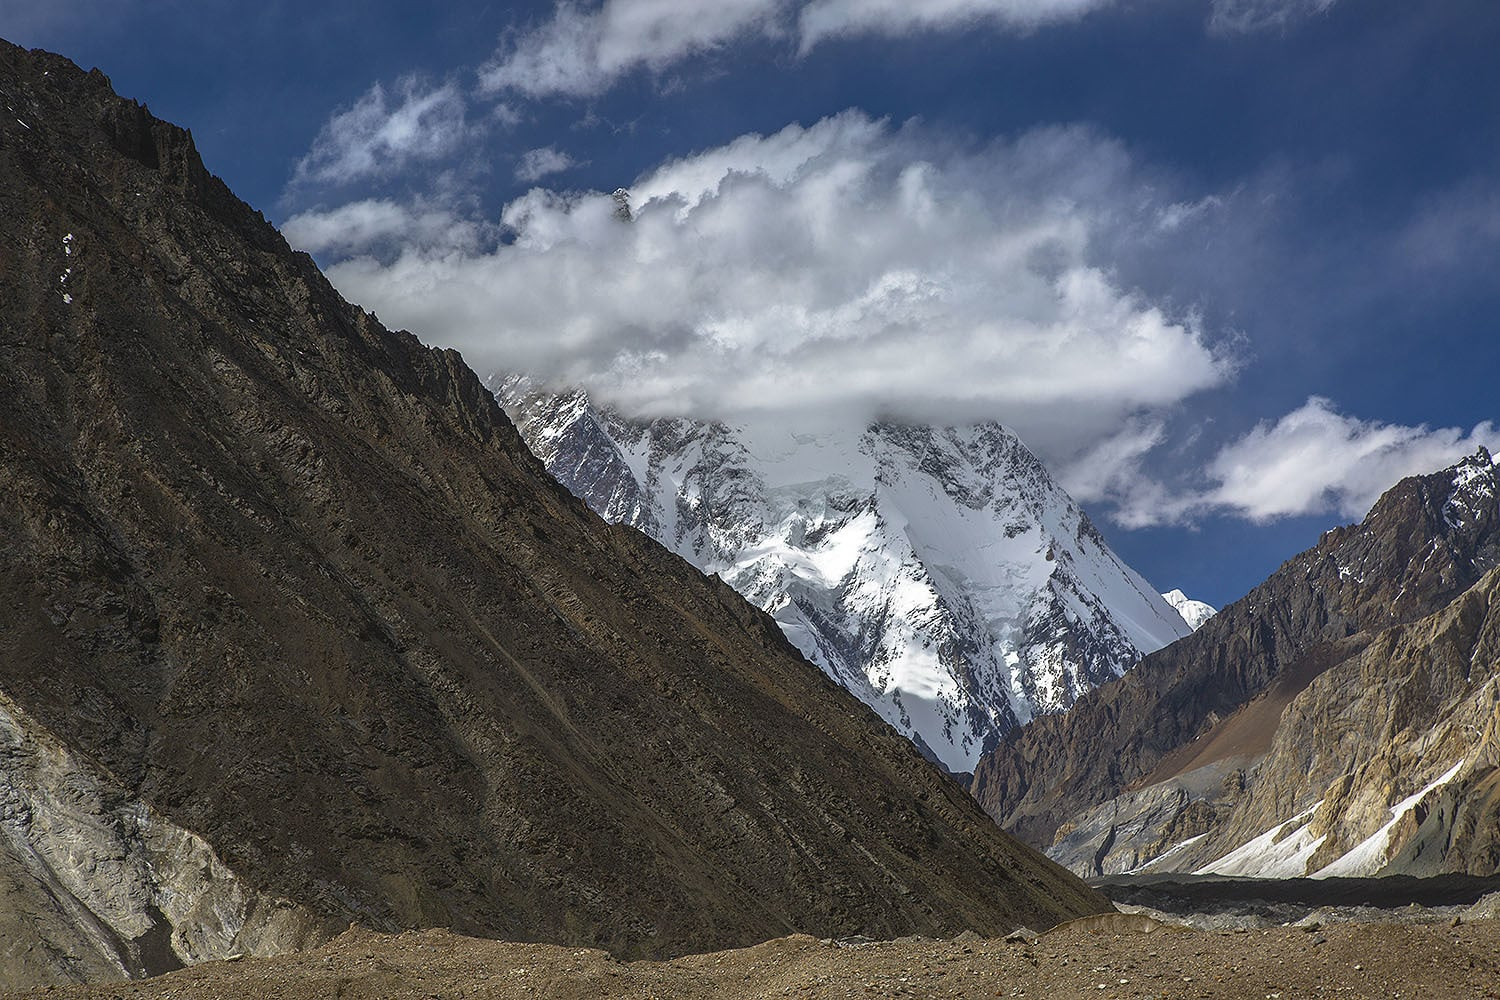 My first view of K2.